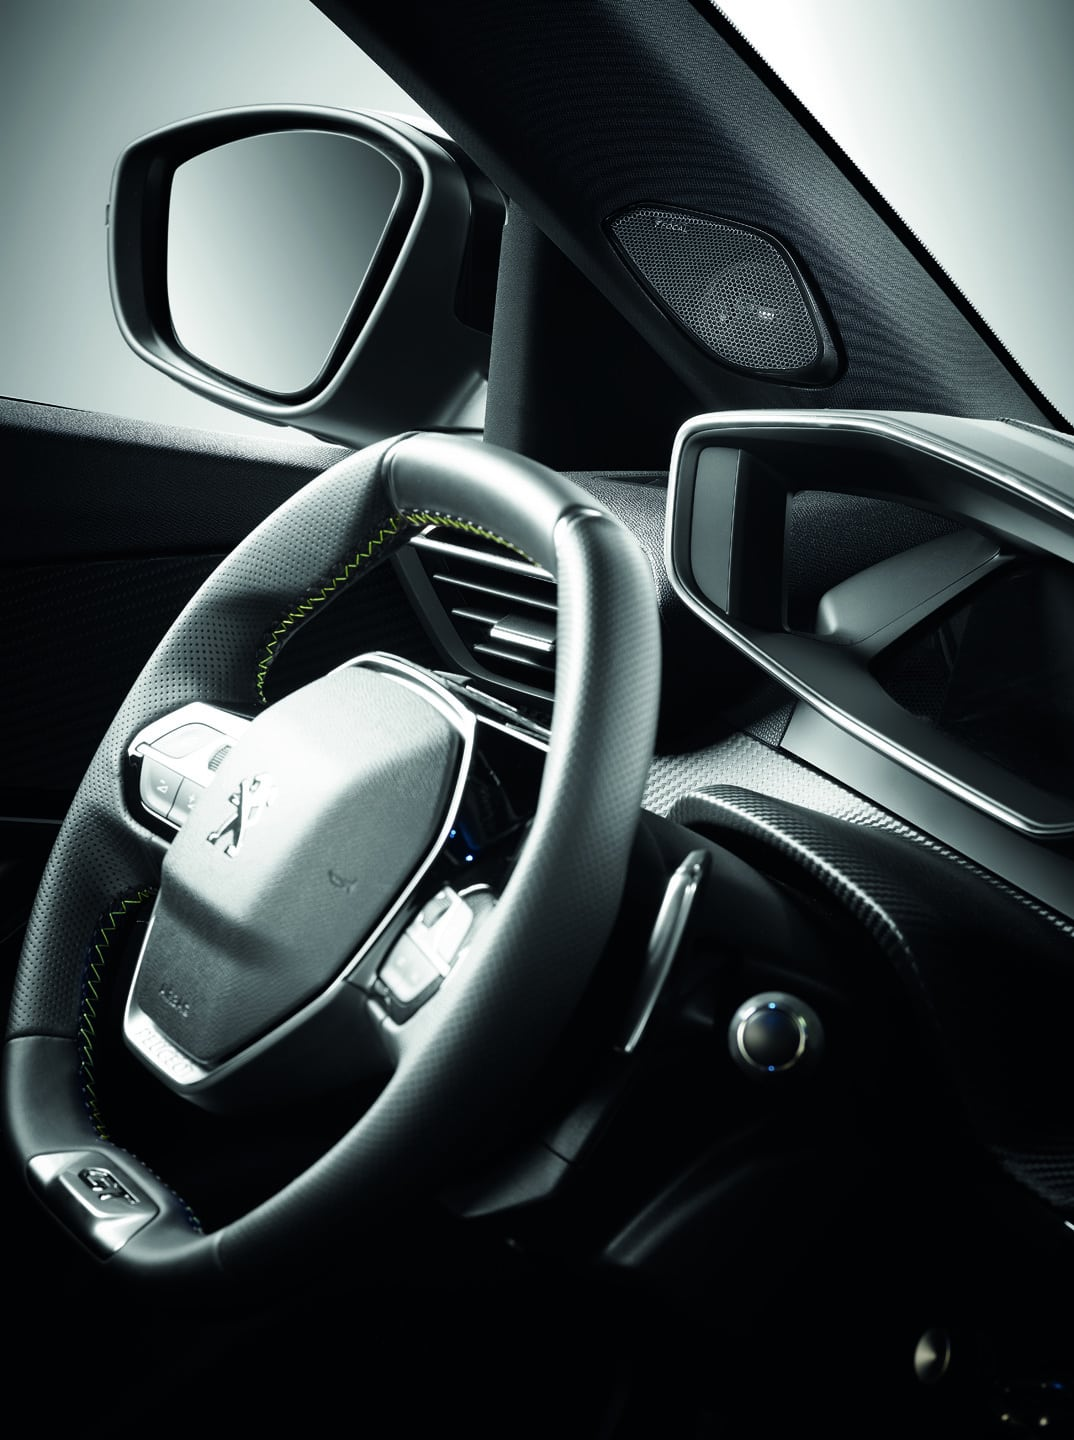 Peugeot Focal Audio systems 7